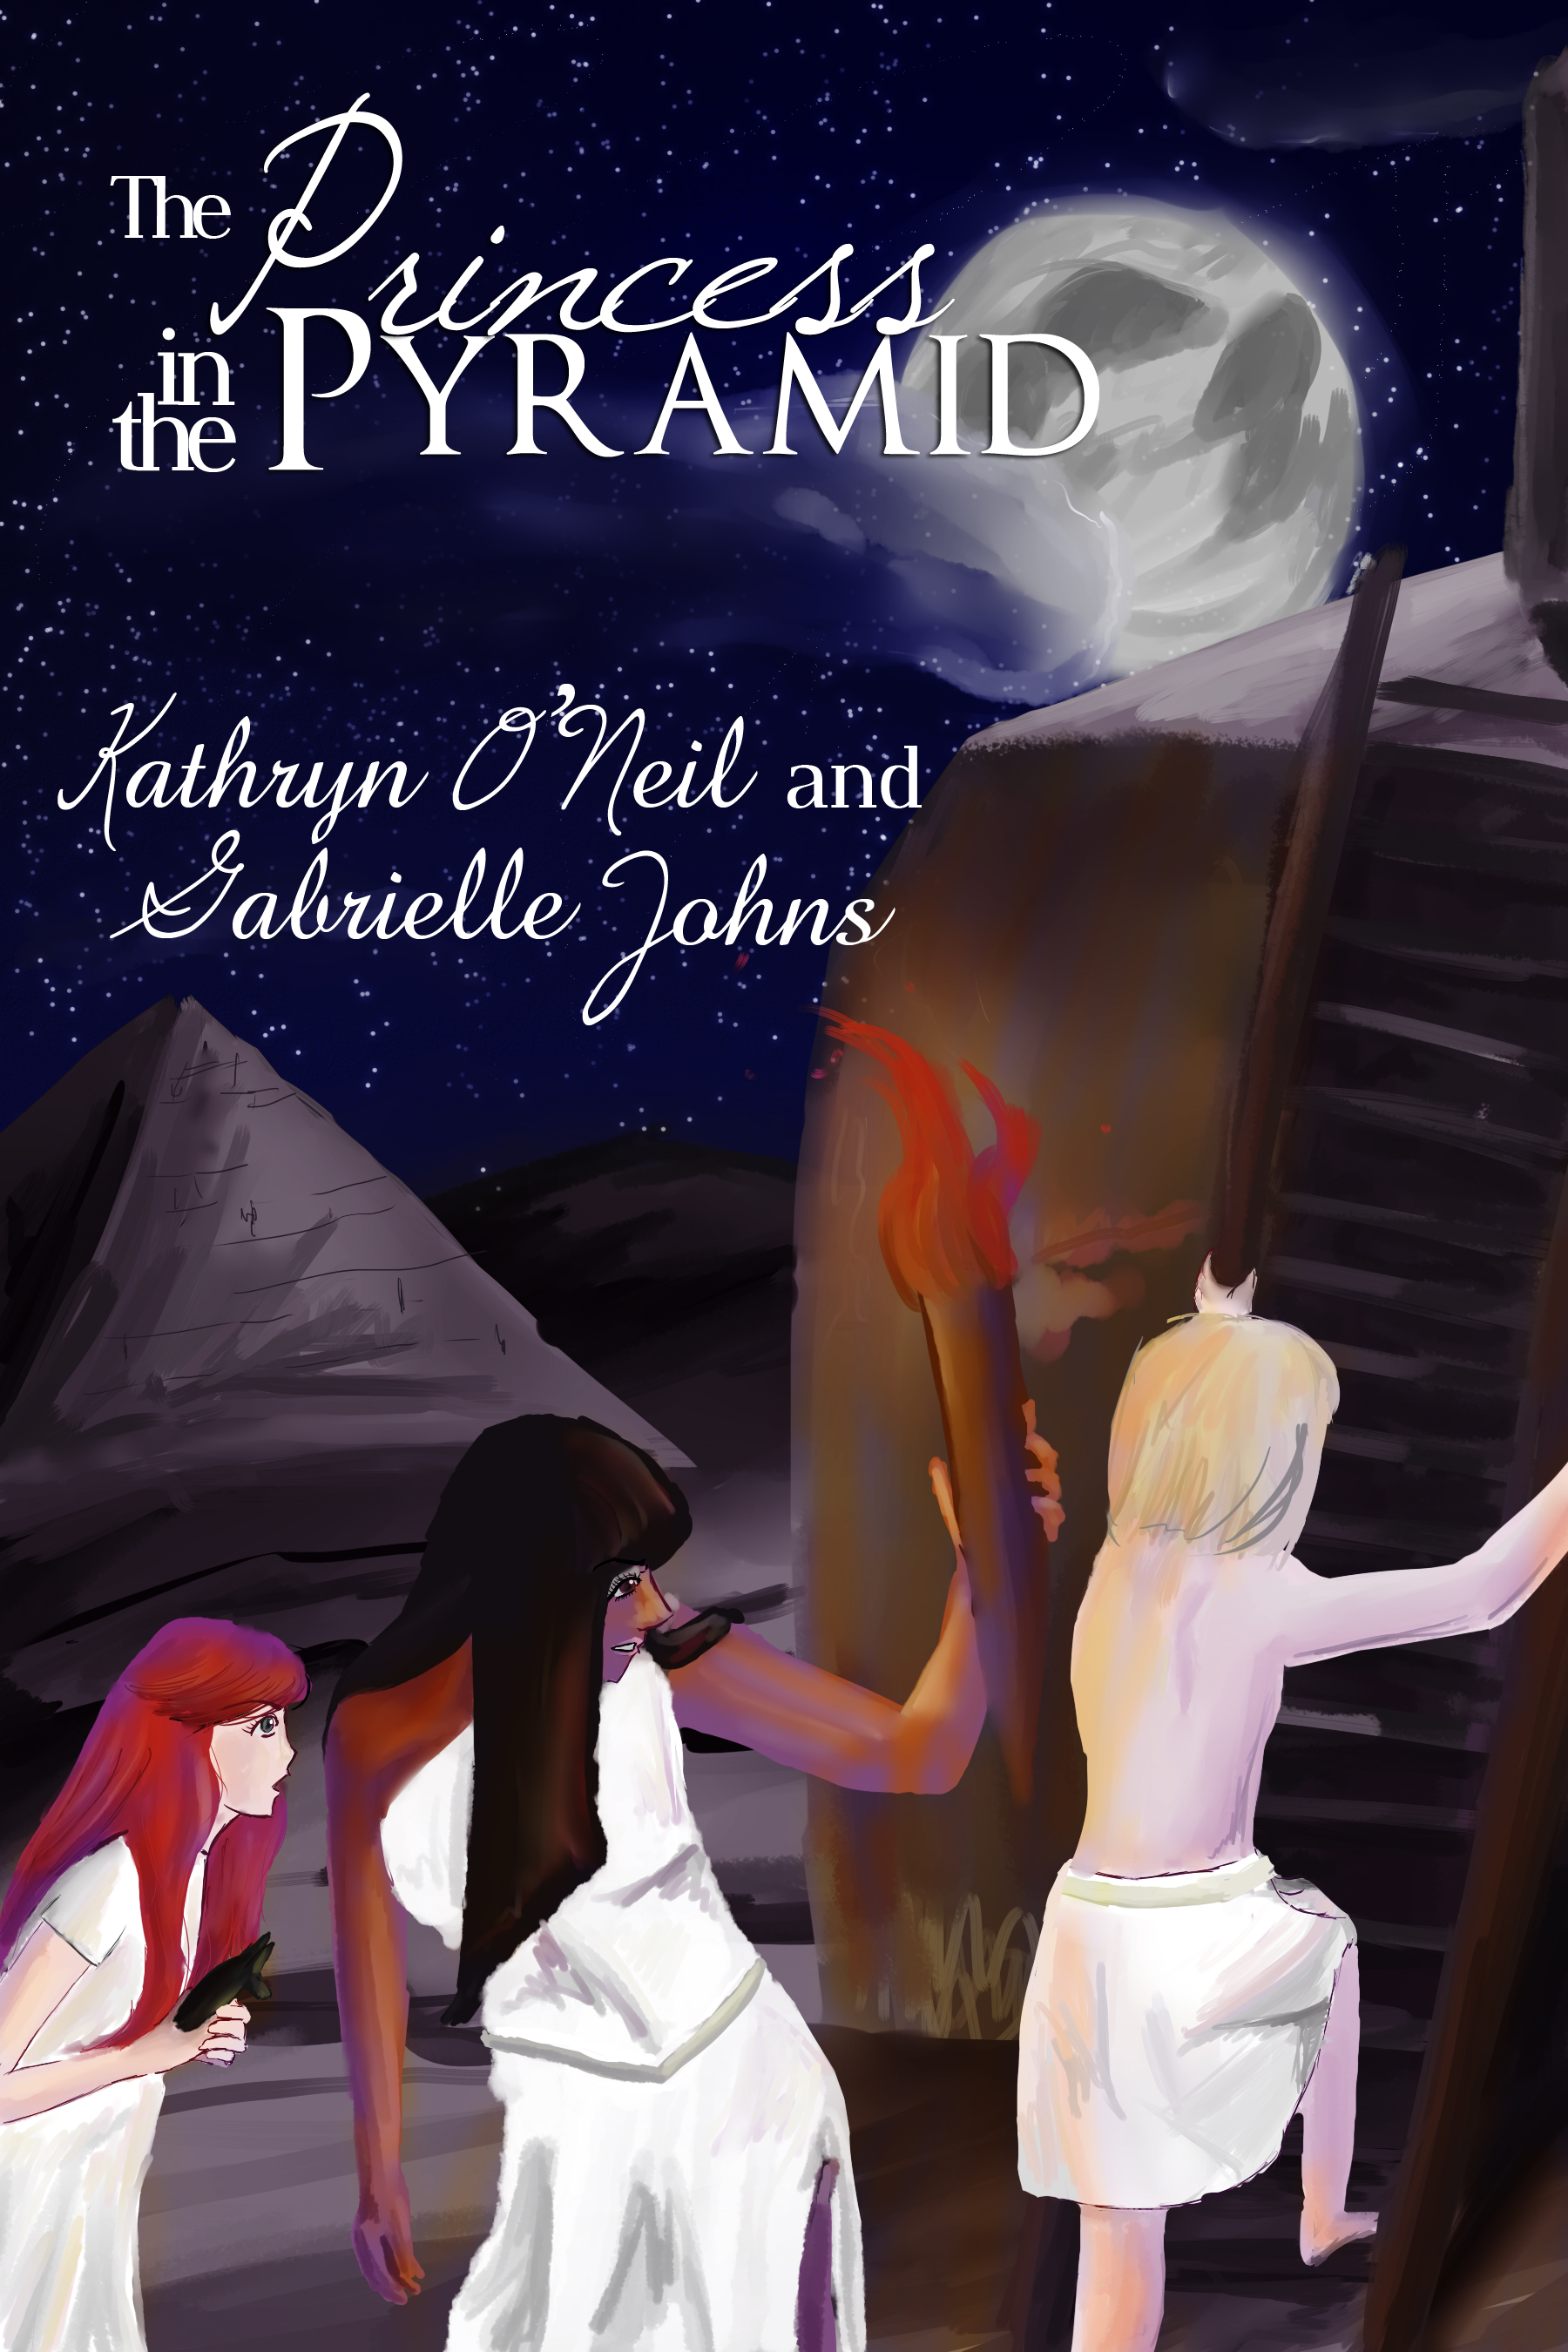 The Princess in the Pyramid by Kathryn O'Neil and Gabrielle Johns